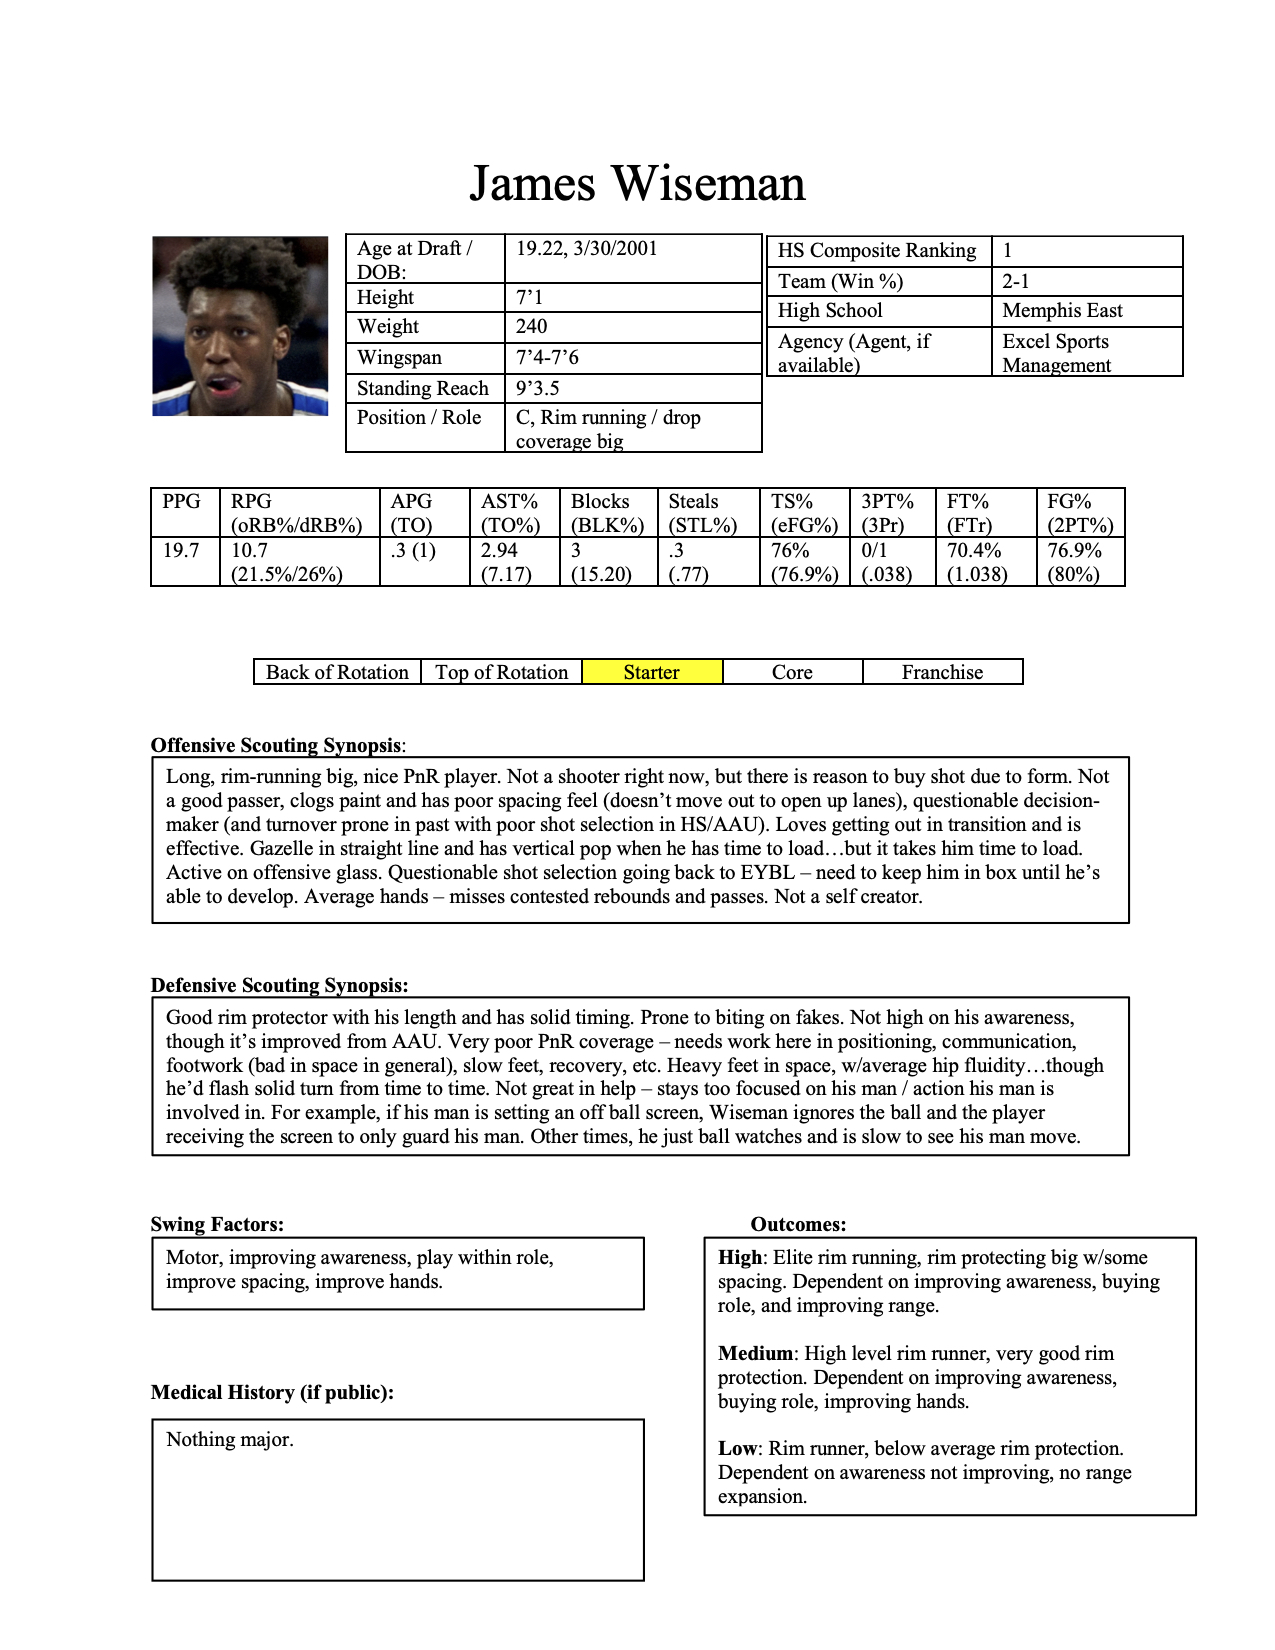 James Wiseman Scouting Report - The Stepien In Scouting Report Basketball Template